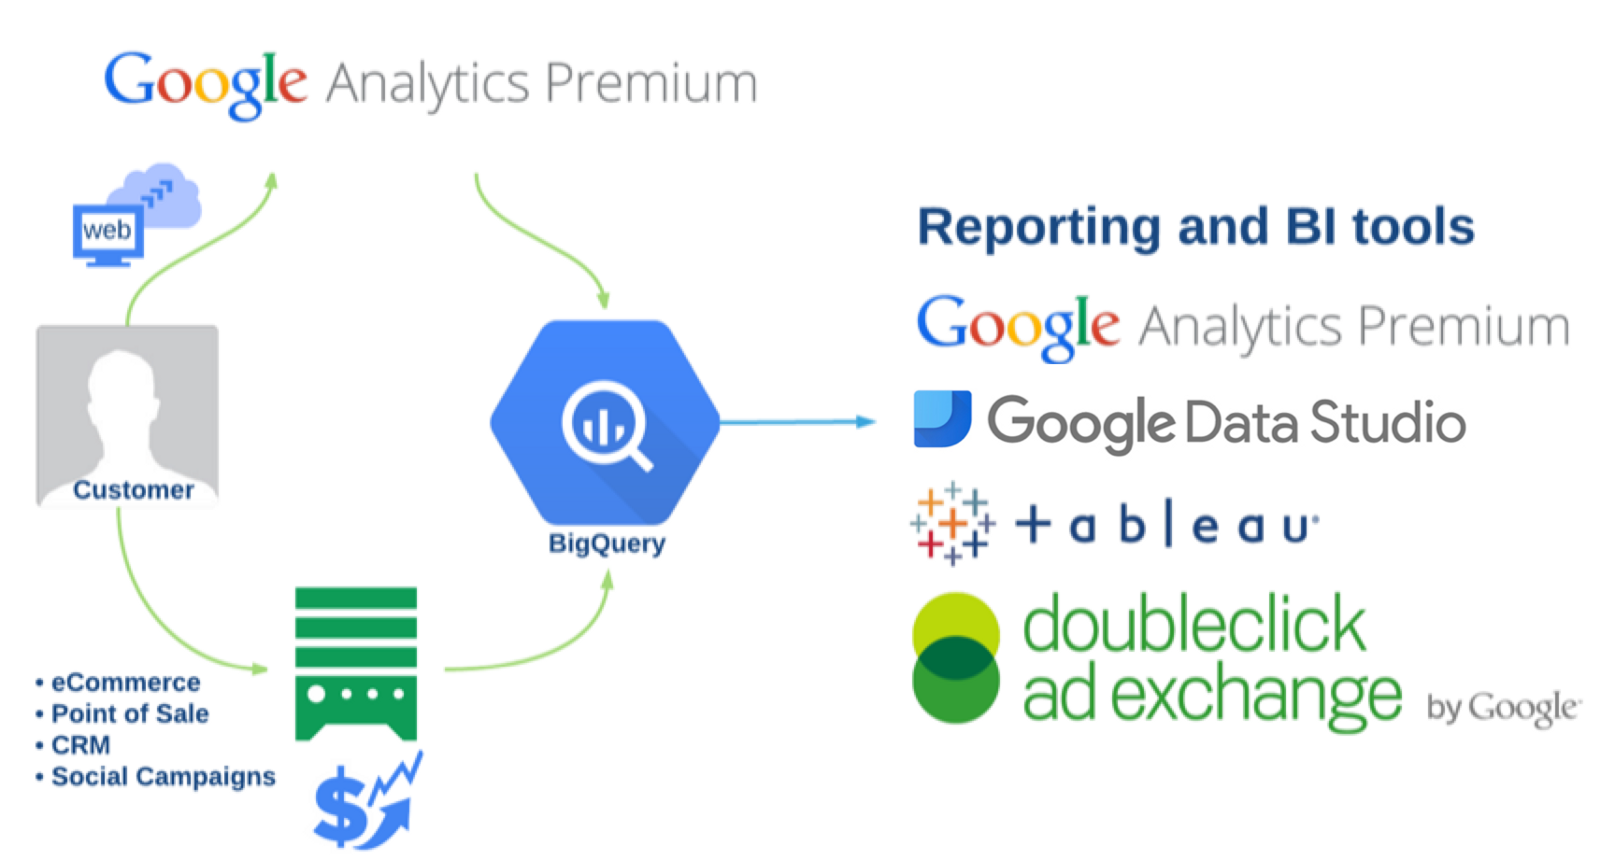 how to connect tableau to google bigquery